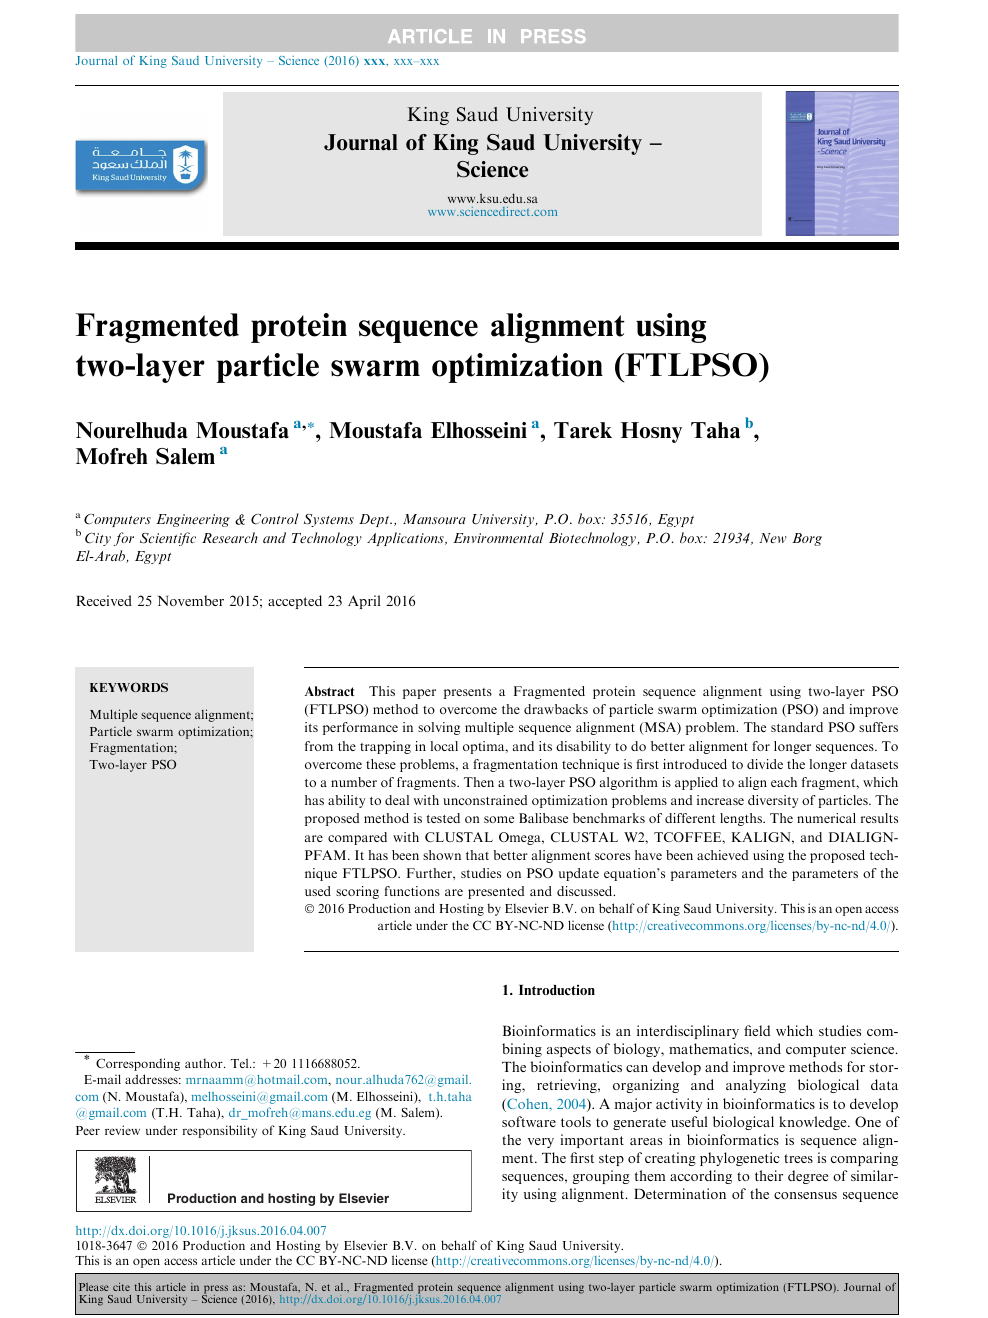 Fragmented protein sequence alignment using two-layer particle swarm